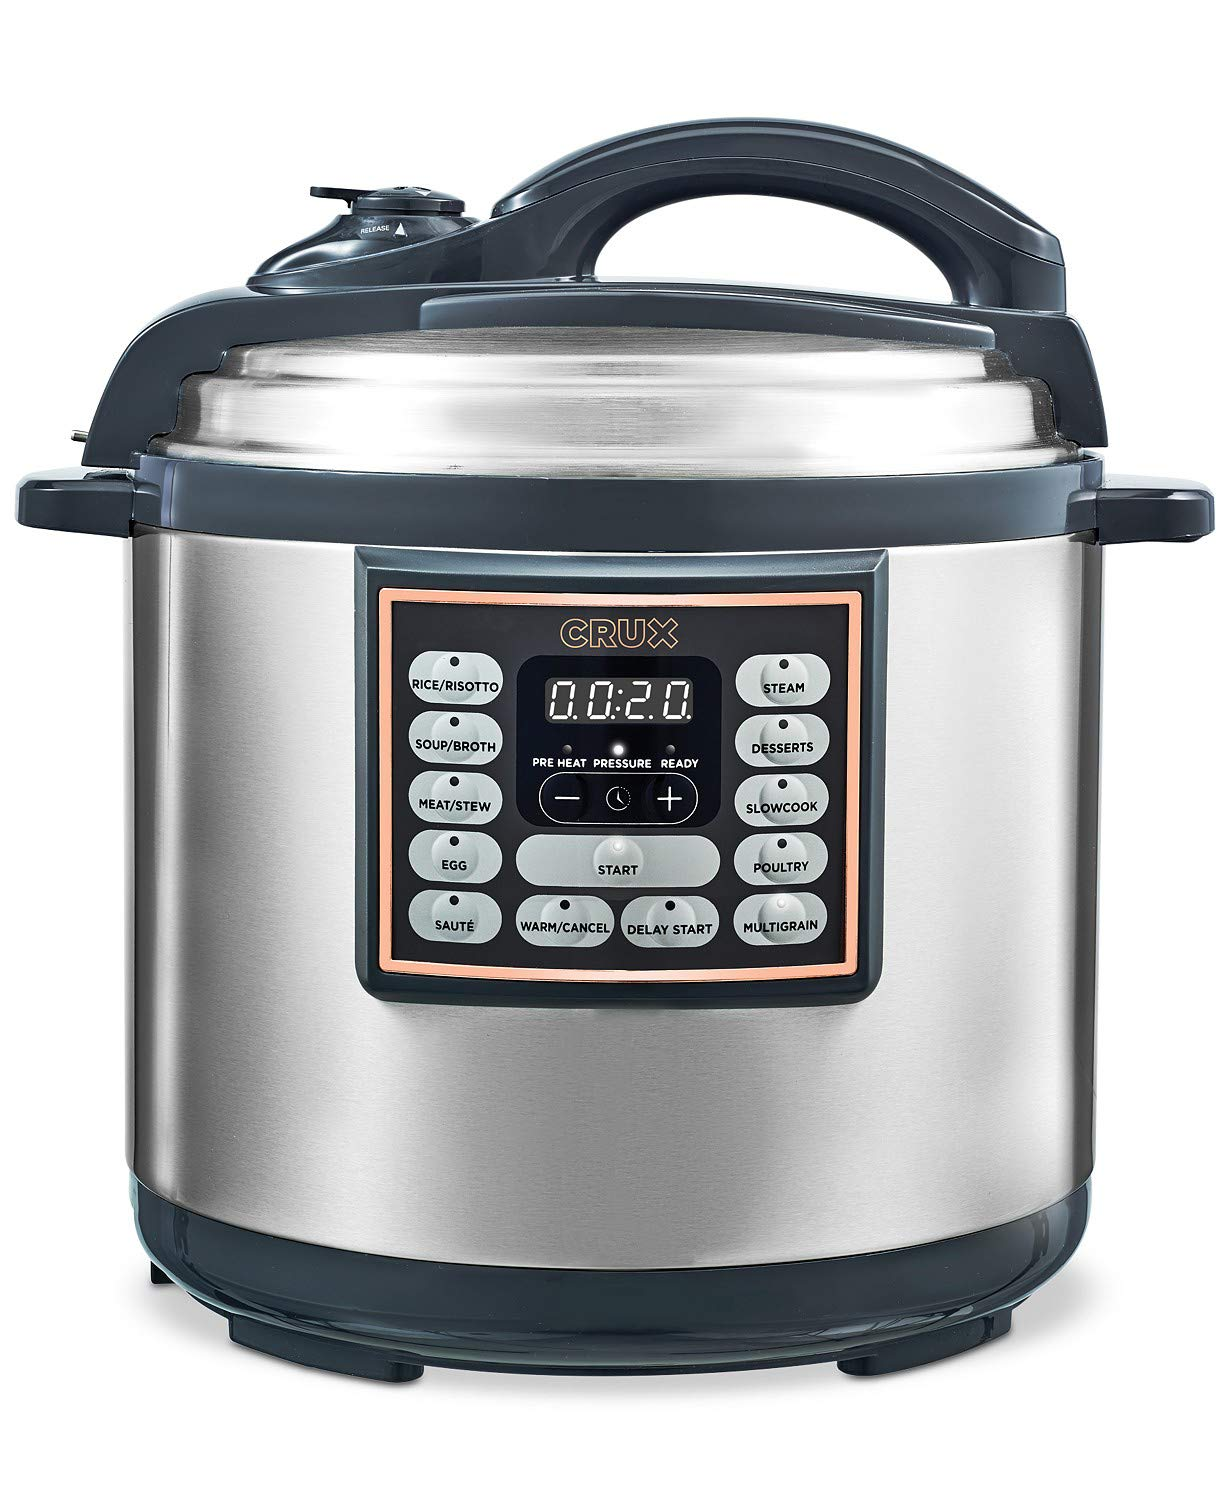 Crux 8-Qt. 10-In-1 Programmable Multi-Cooker